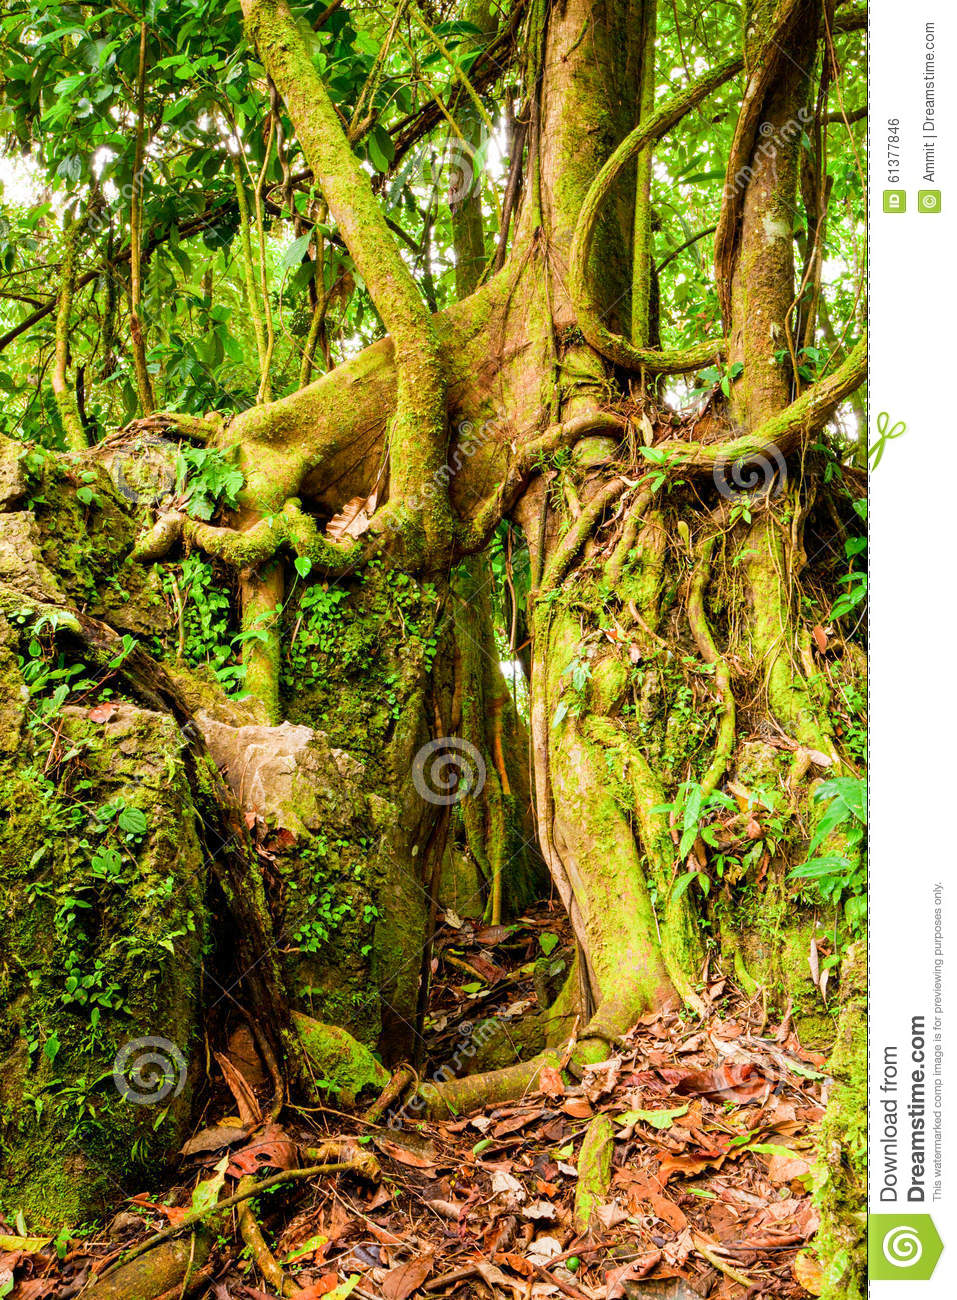 Matapalo Tree In The Cloud Forest Stock Photo - Image of matapalo